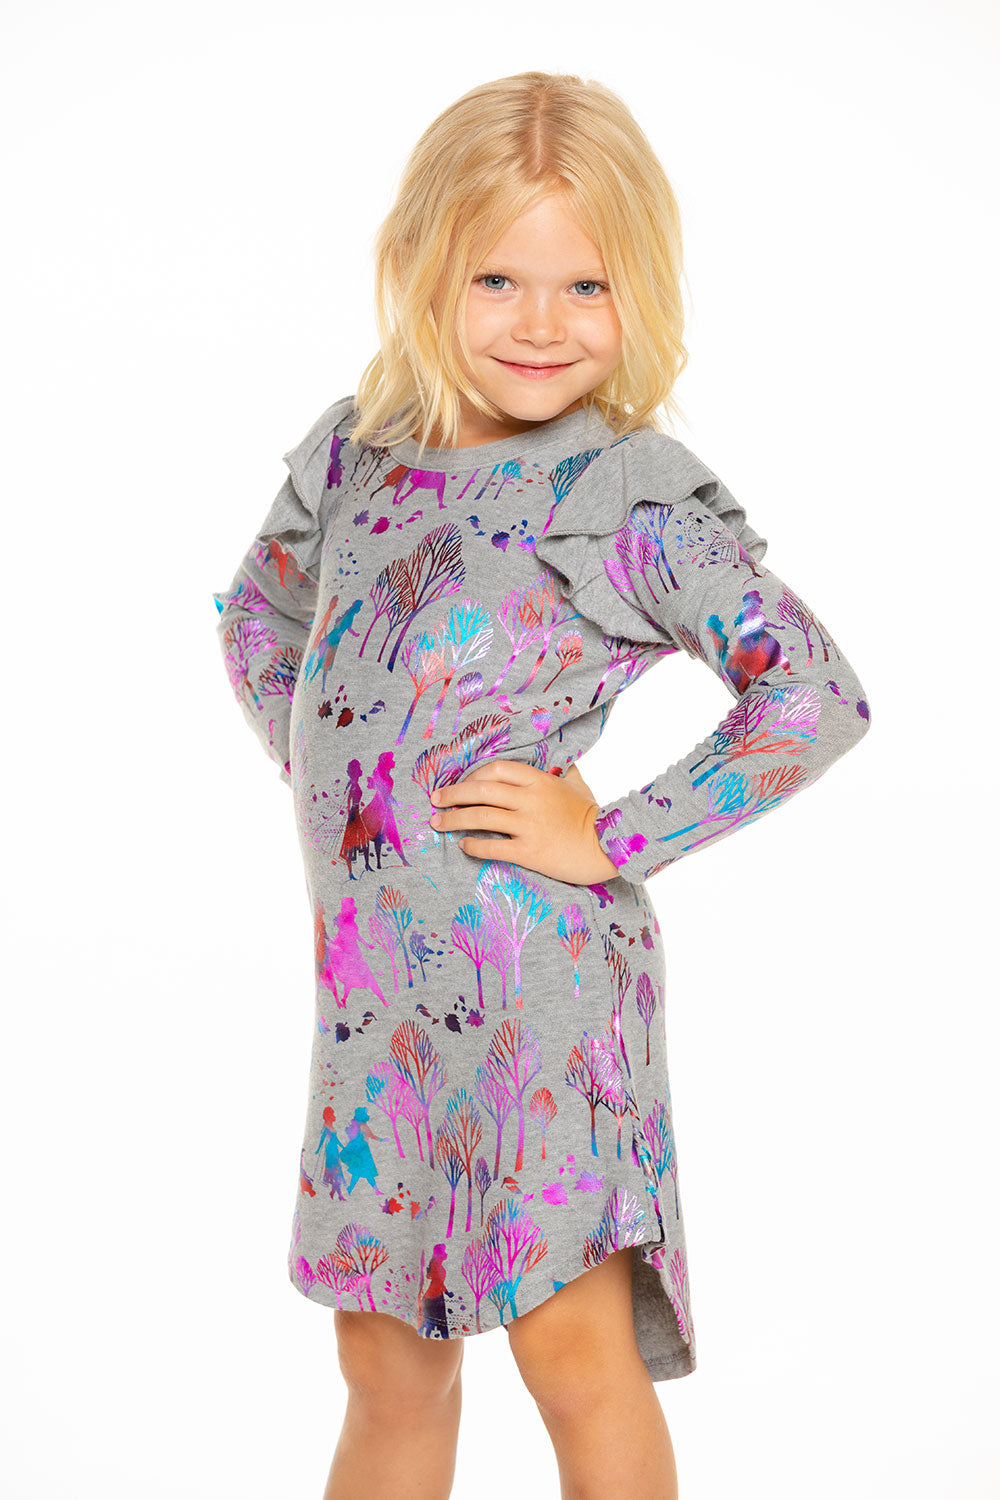 Disney's Frozen 2 - Disney's Frozen Forest GIRLS chaserbrand4.myshopify.com